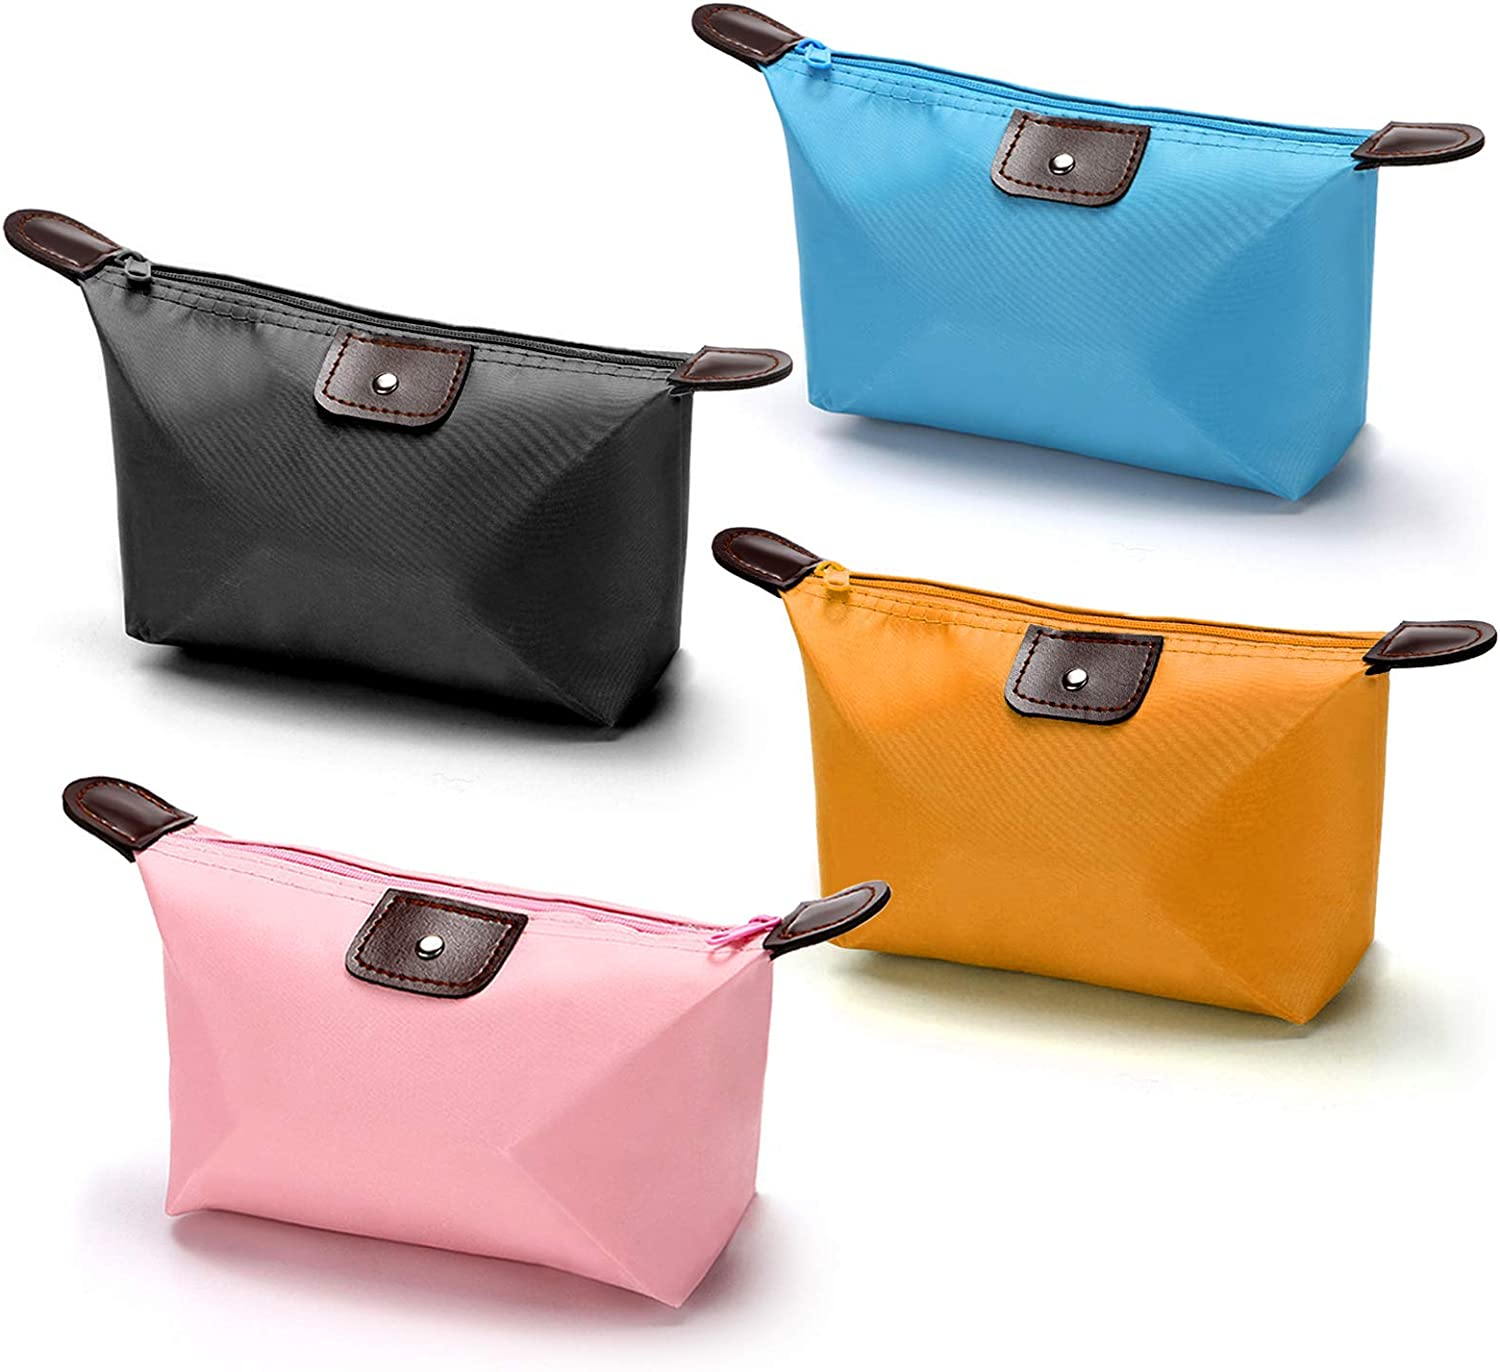 Makeup Bags for Purse Travel Waterproof Mini Zipper Cosmetic Bag for Women Girls, Portable Daily Storage Organizer Toiletry Pouch, Luggage Accessories for Travel